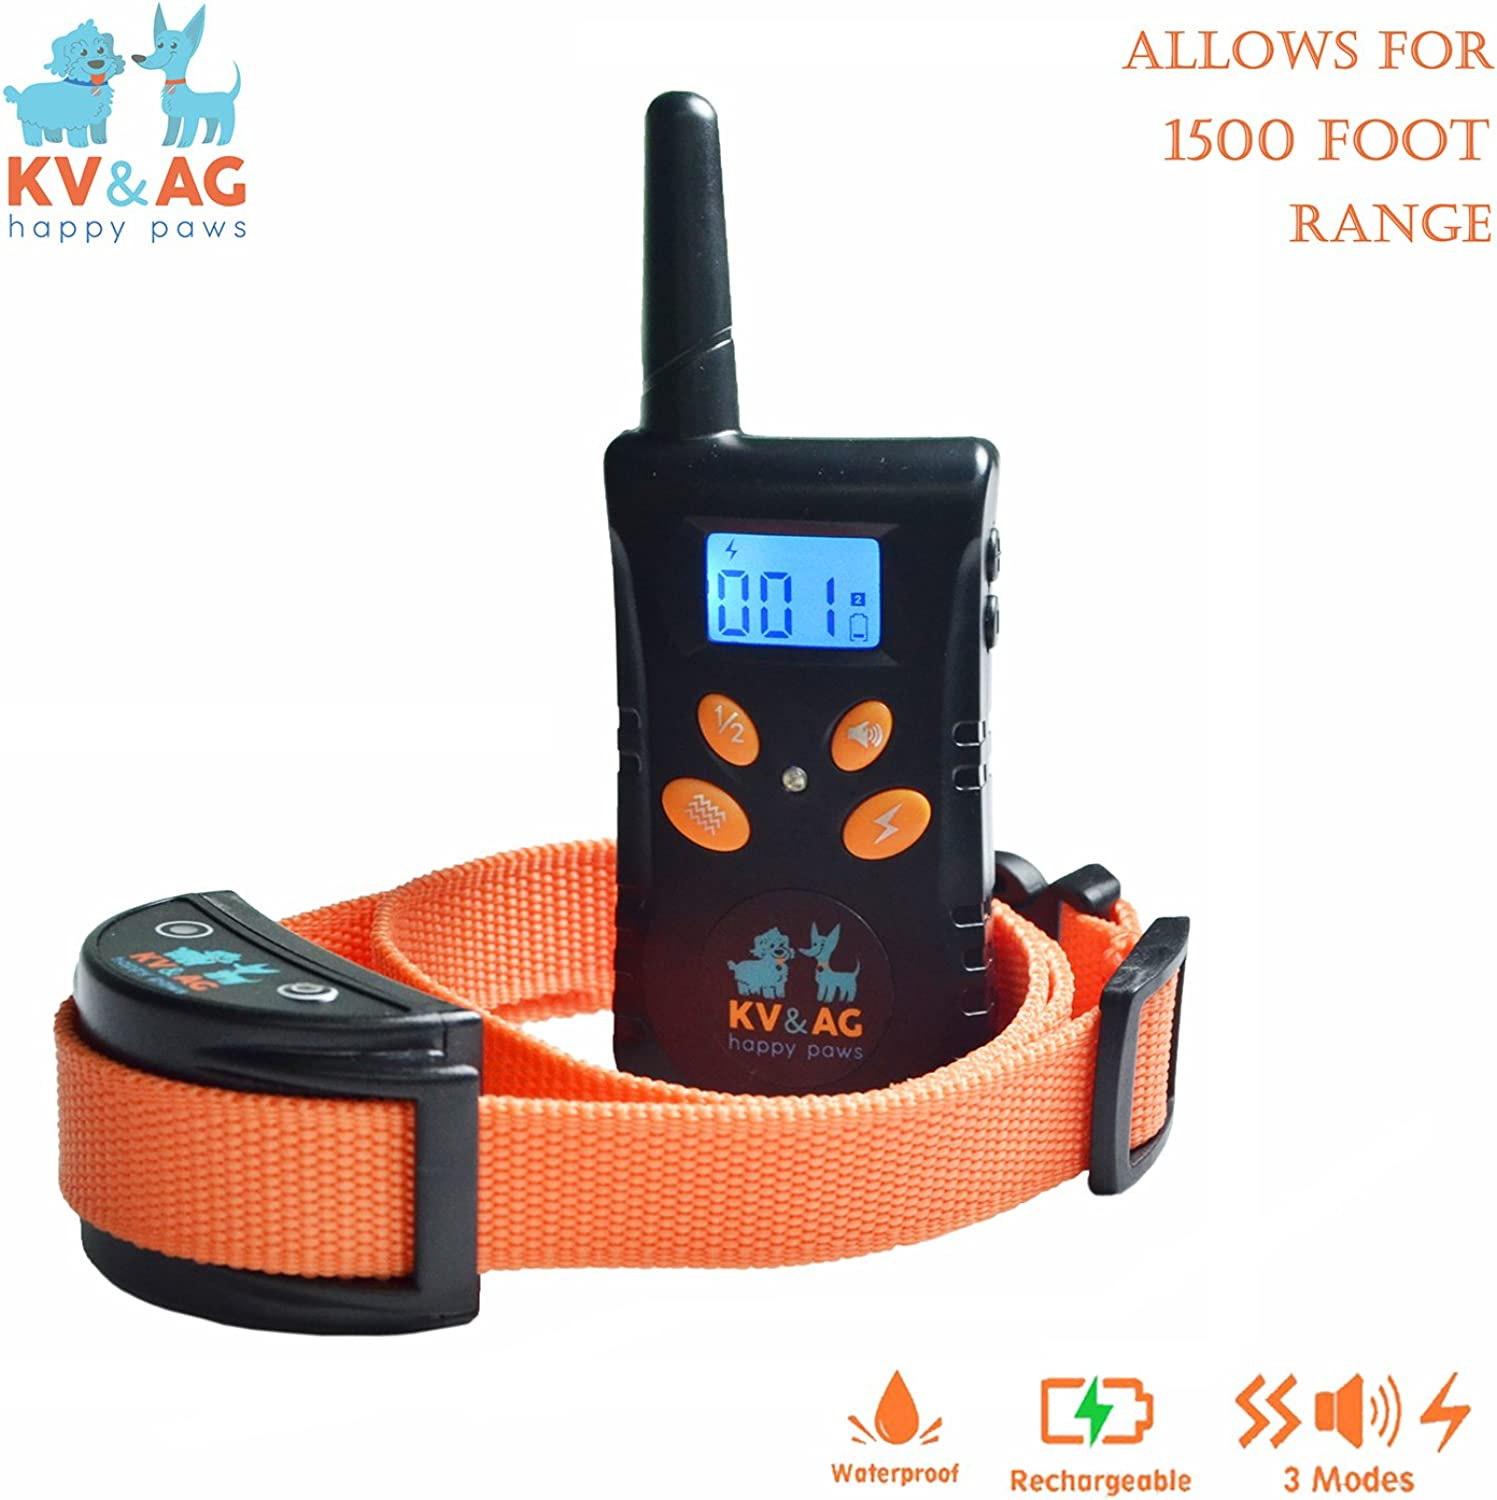 KAVLOV KV & AG Happy Paws Dog Training with Remote 1500 ft Waterproof & Rechargeable 3 Functional Modes Static Shock  Vibration  Sound for Most Small Medium Large Sized Dogs Easy & Simple to Use.